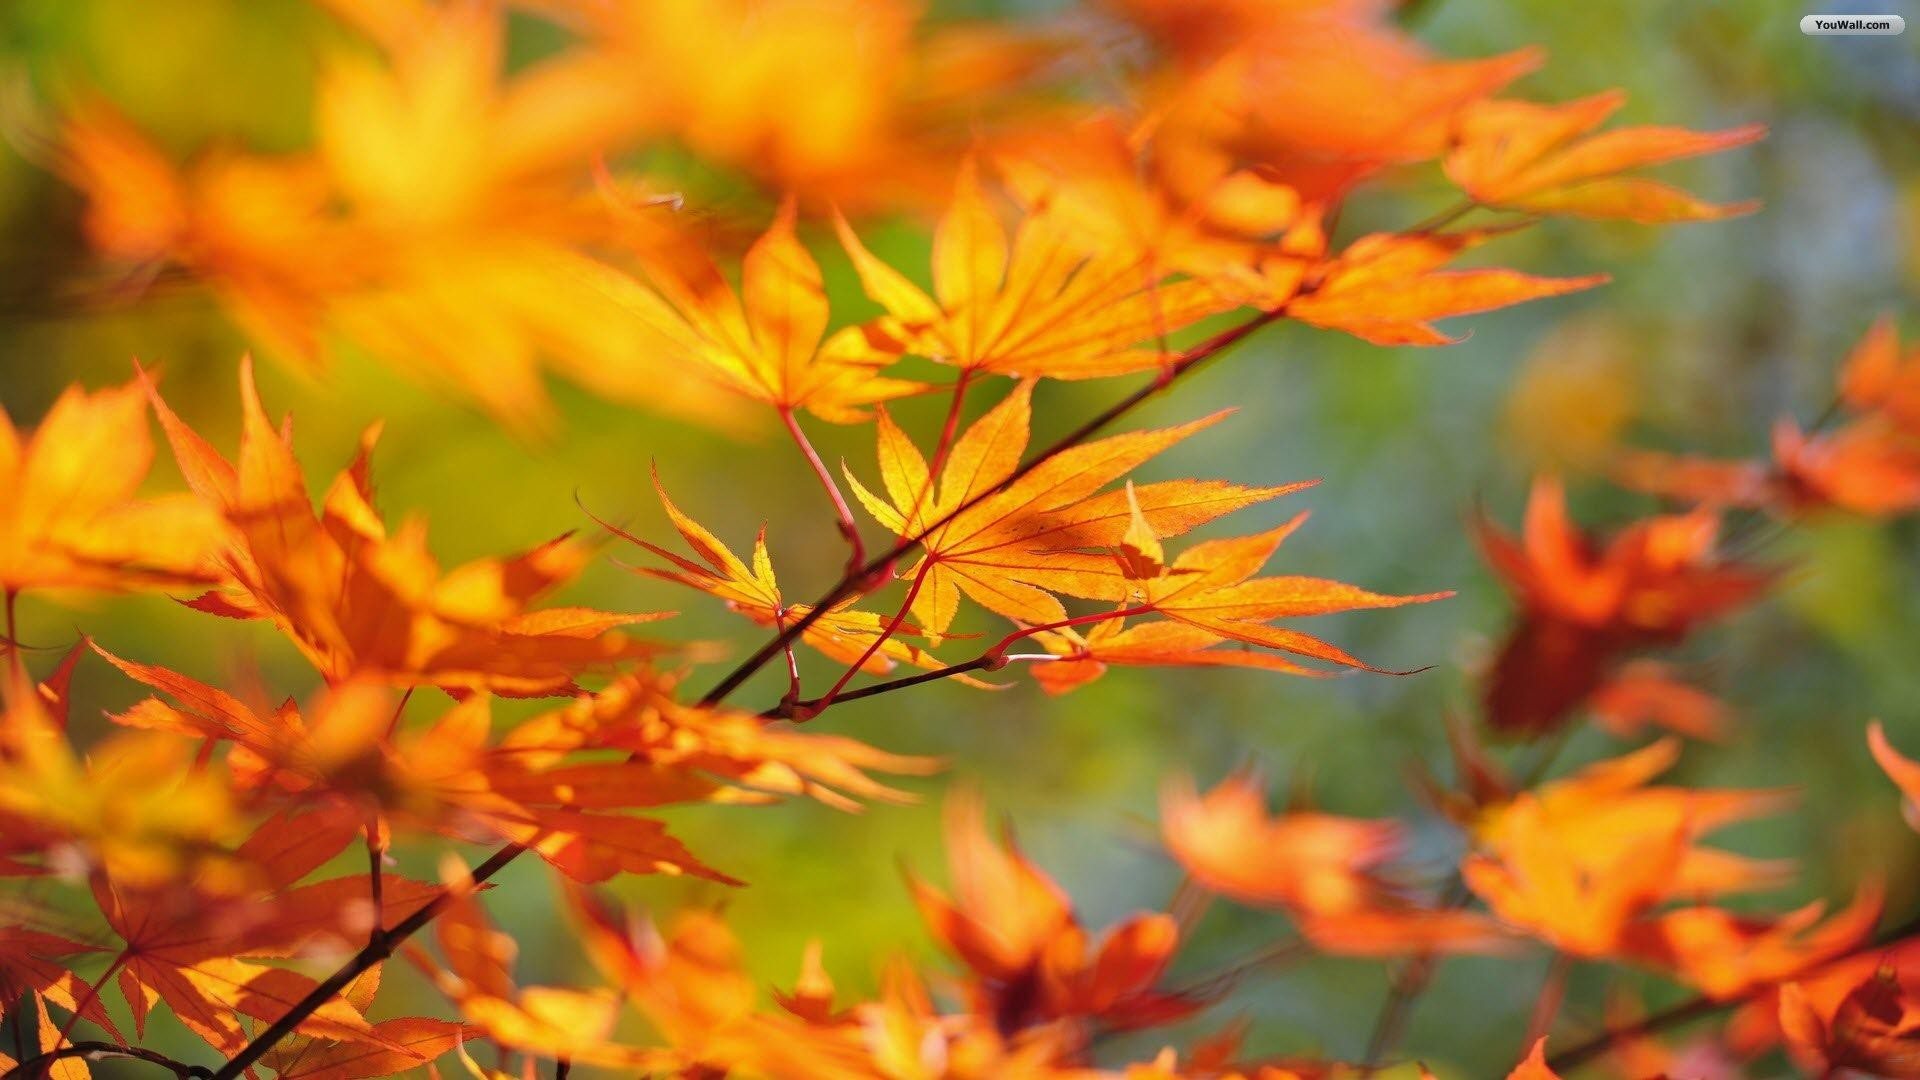 Fall Leaves Desktop Background ·① Download Free Stunning